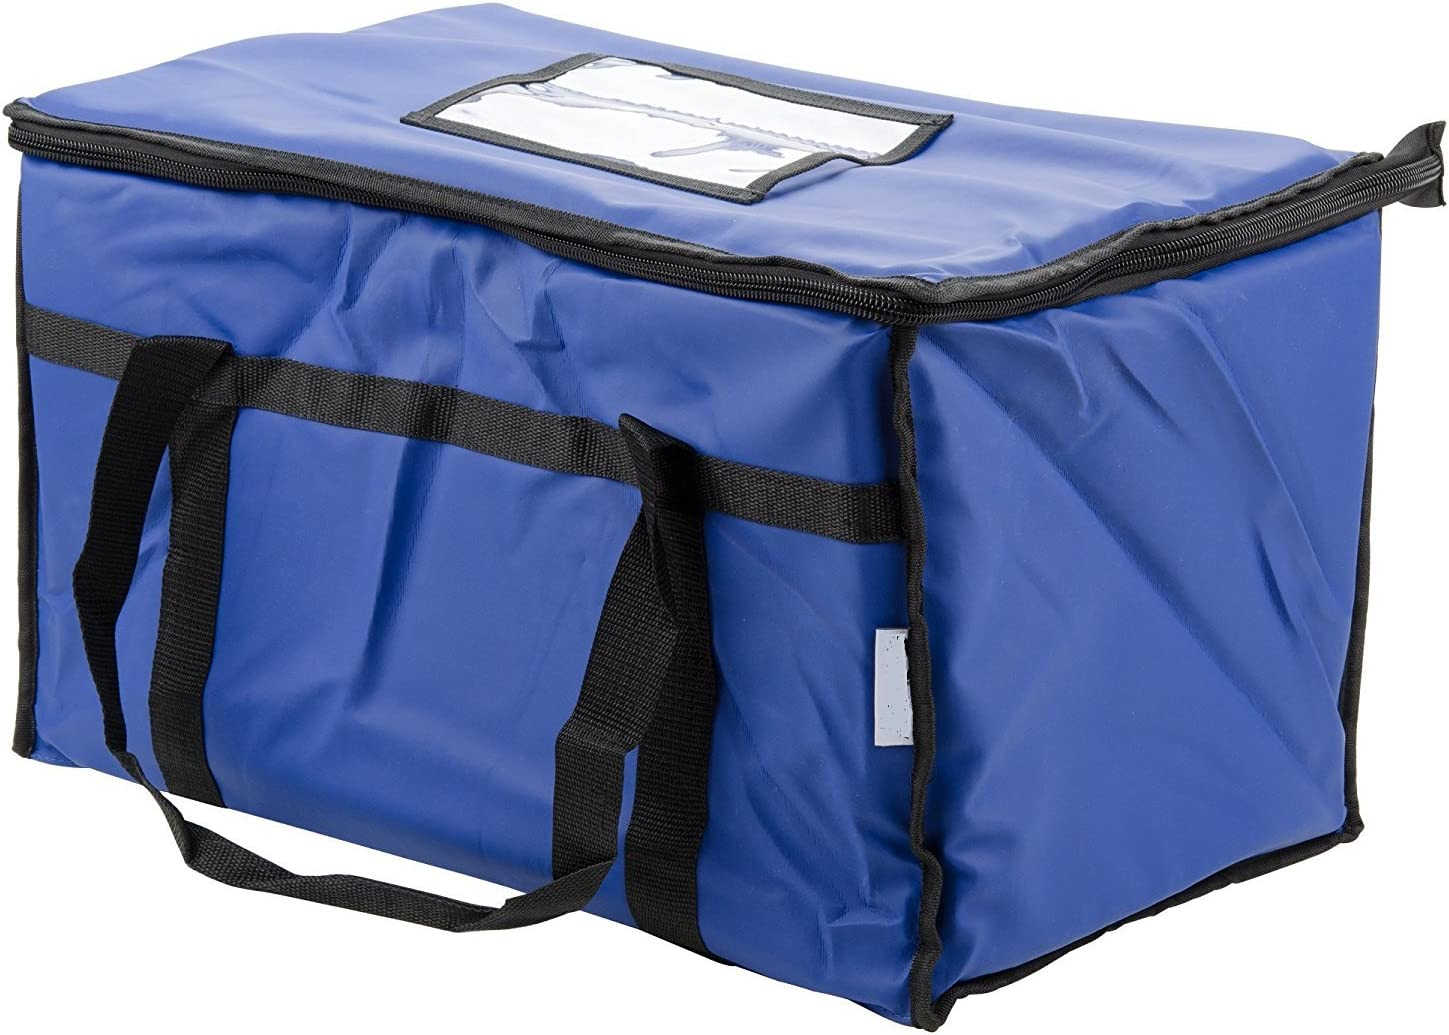 Restaurantlinenstore Insulated Food Delivery Bag Pan Carrier, 23 x 13 x 15-Inches (Blue)